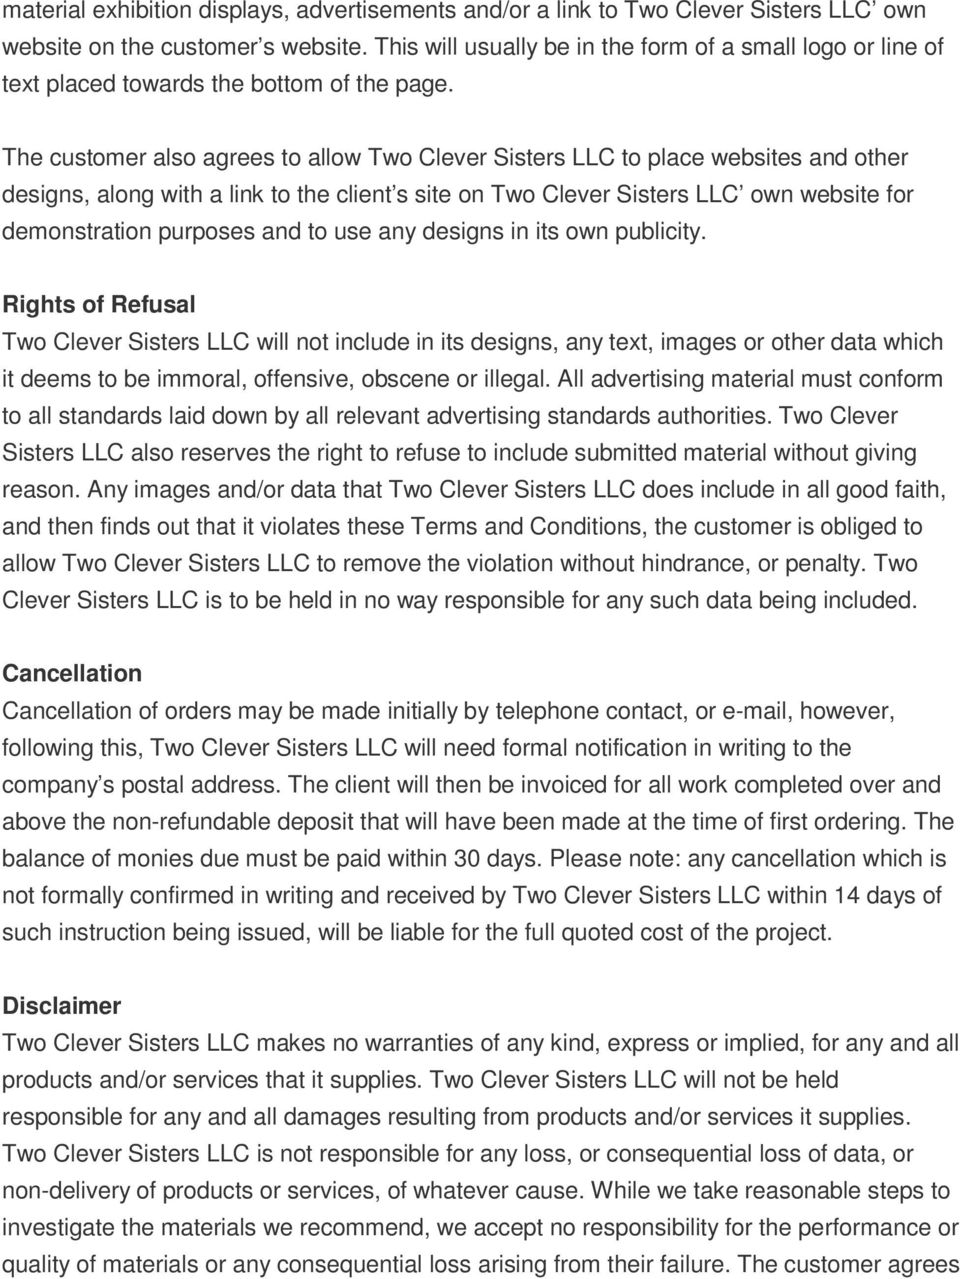 The customer also agrees to allow Two Clever Sisters LLC to place websites and other designs, along with a link to the client s site on Two Clever Sisters LLC own website for demonstration purposes